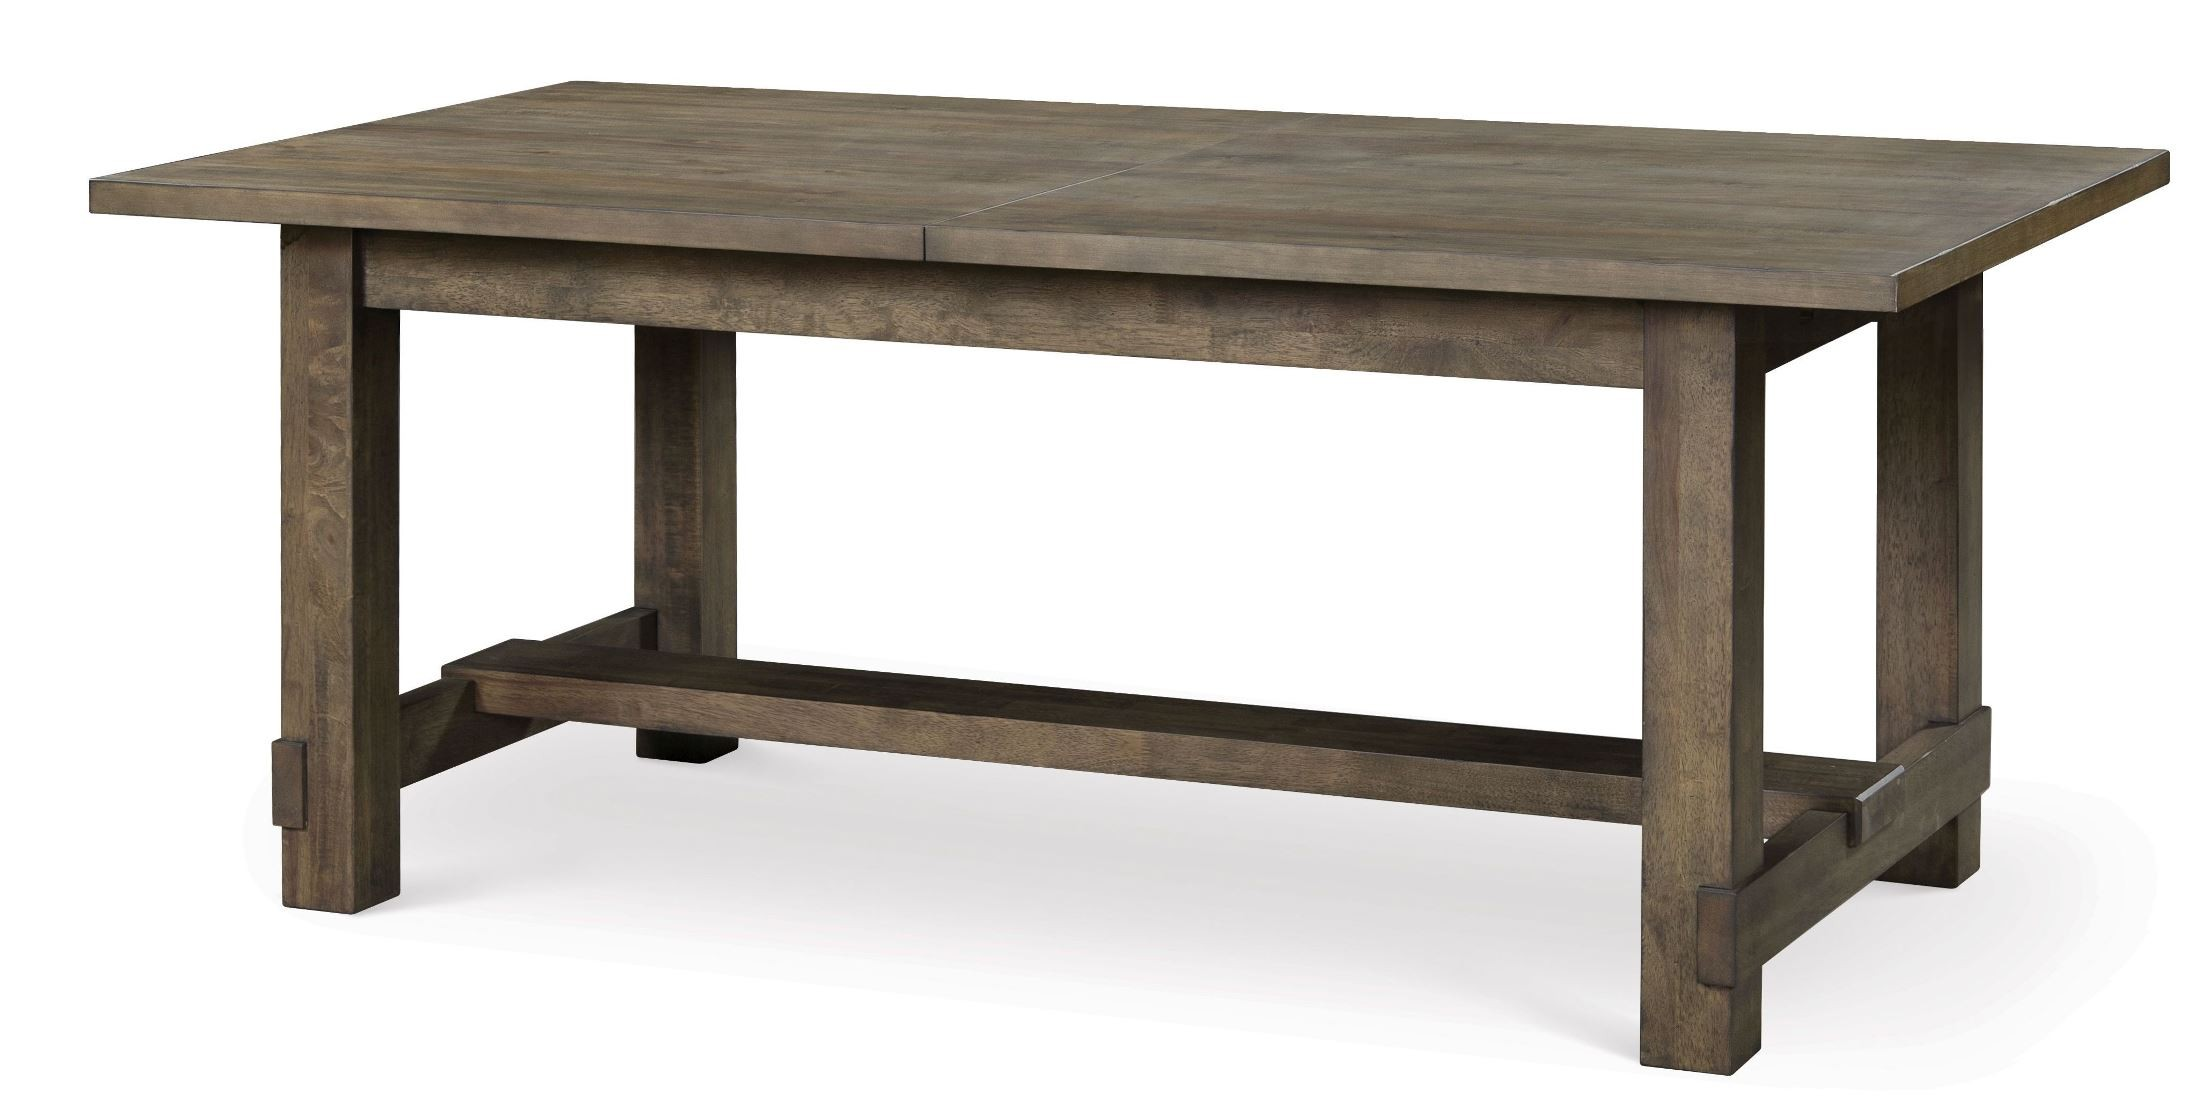 Karlin rectangular dining table from magnussen home d2471 20 coleman furniture - Rectangular dining table for 6 ...